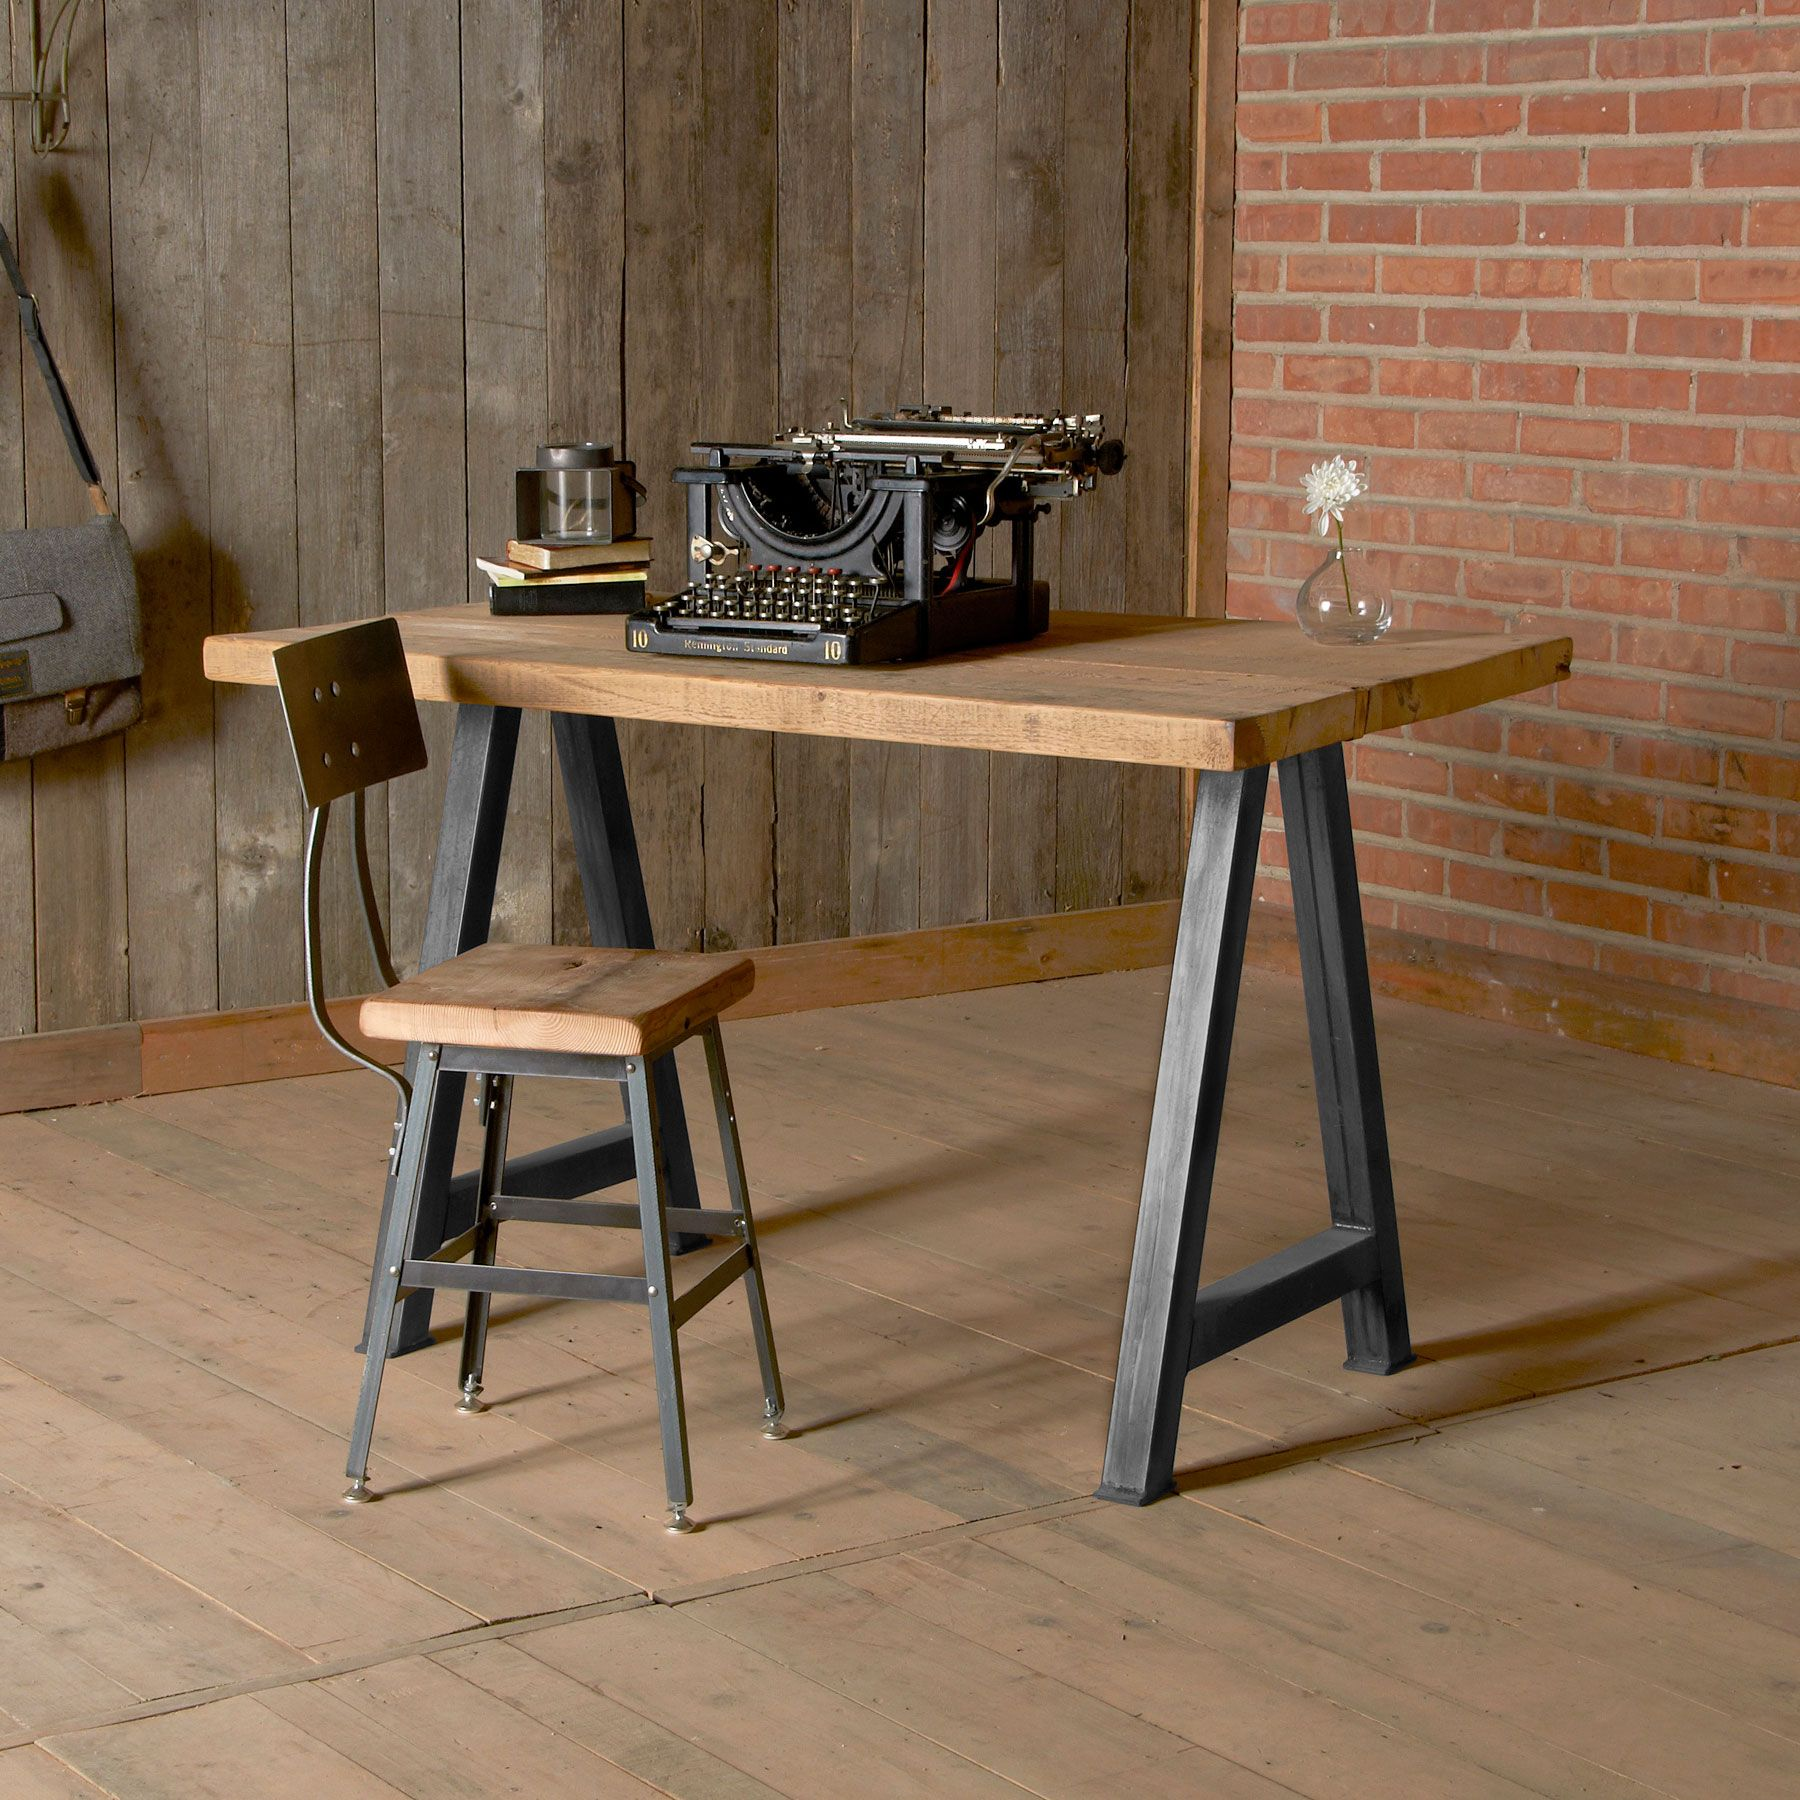 This American Desk Industrial Style Office Furniture Wood Office Furniture Modern Wood Desk